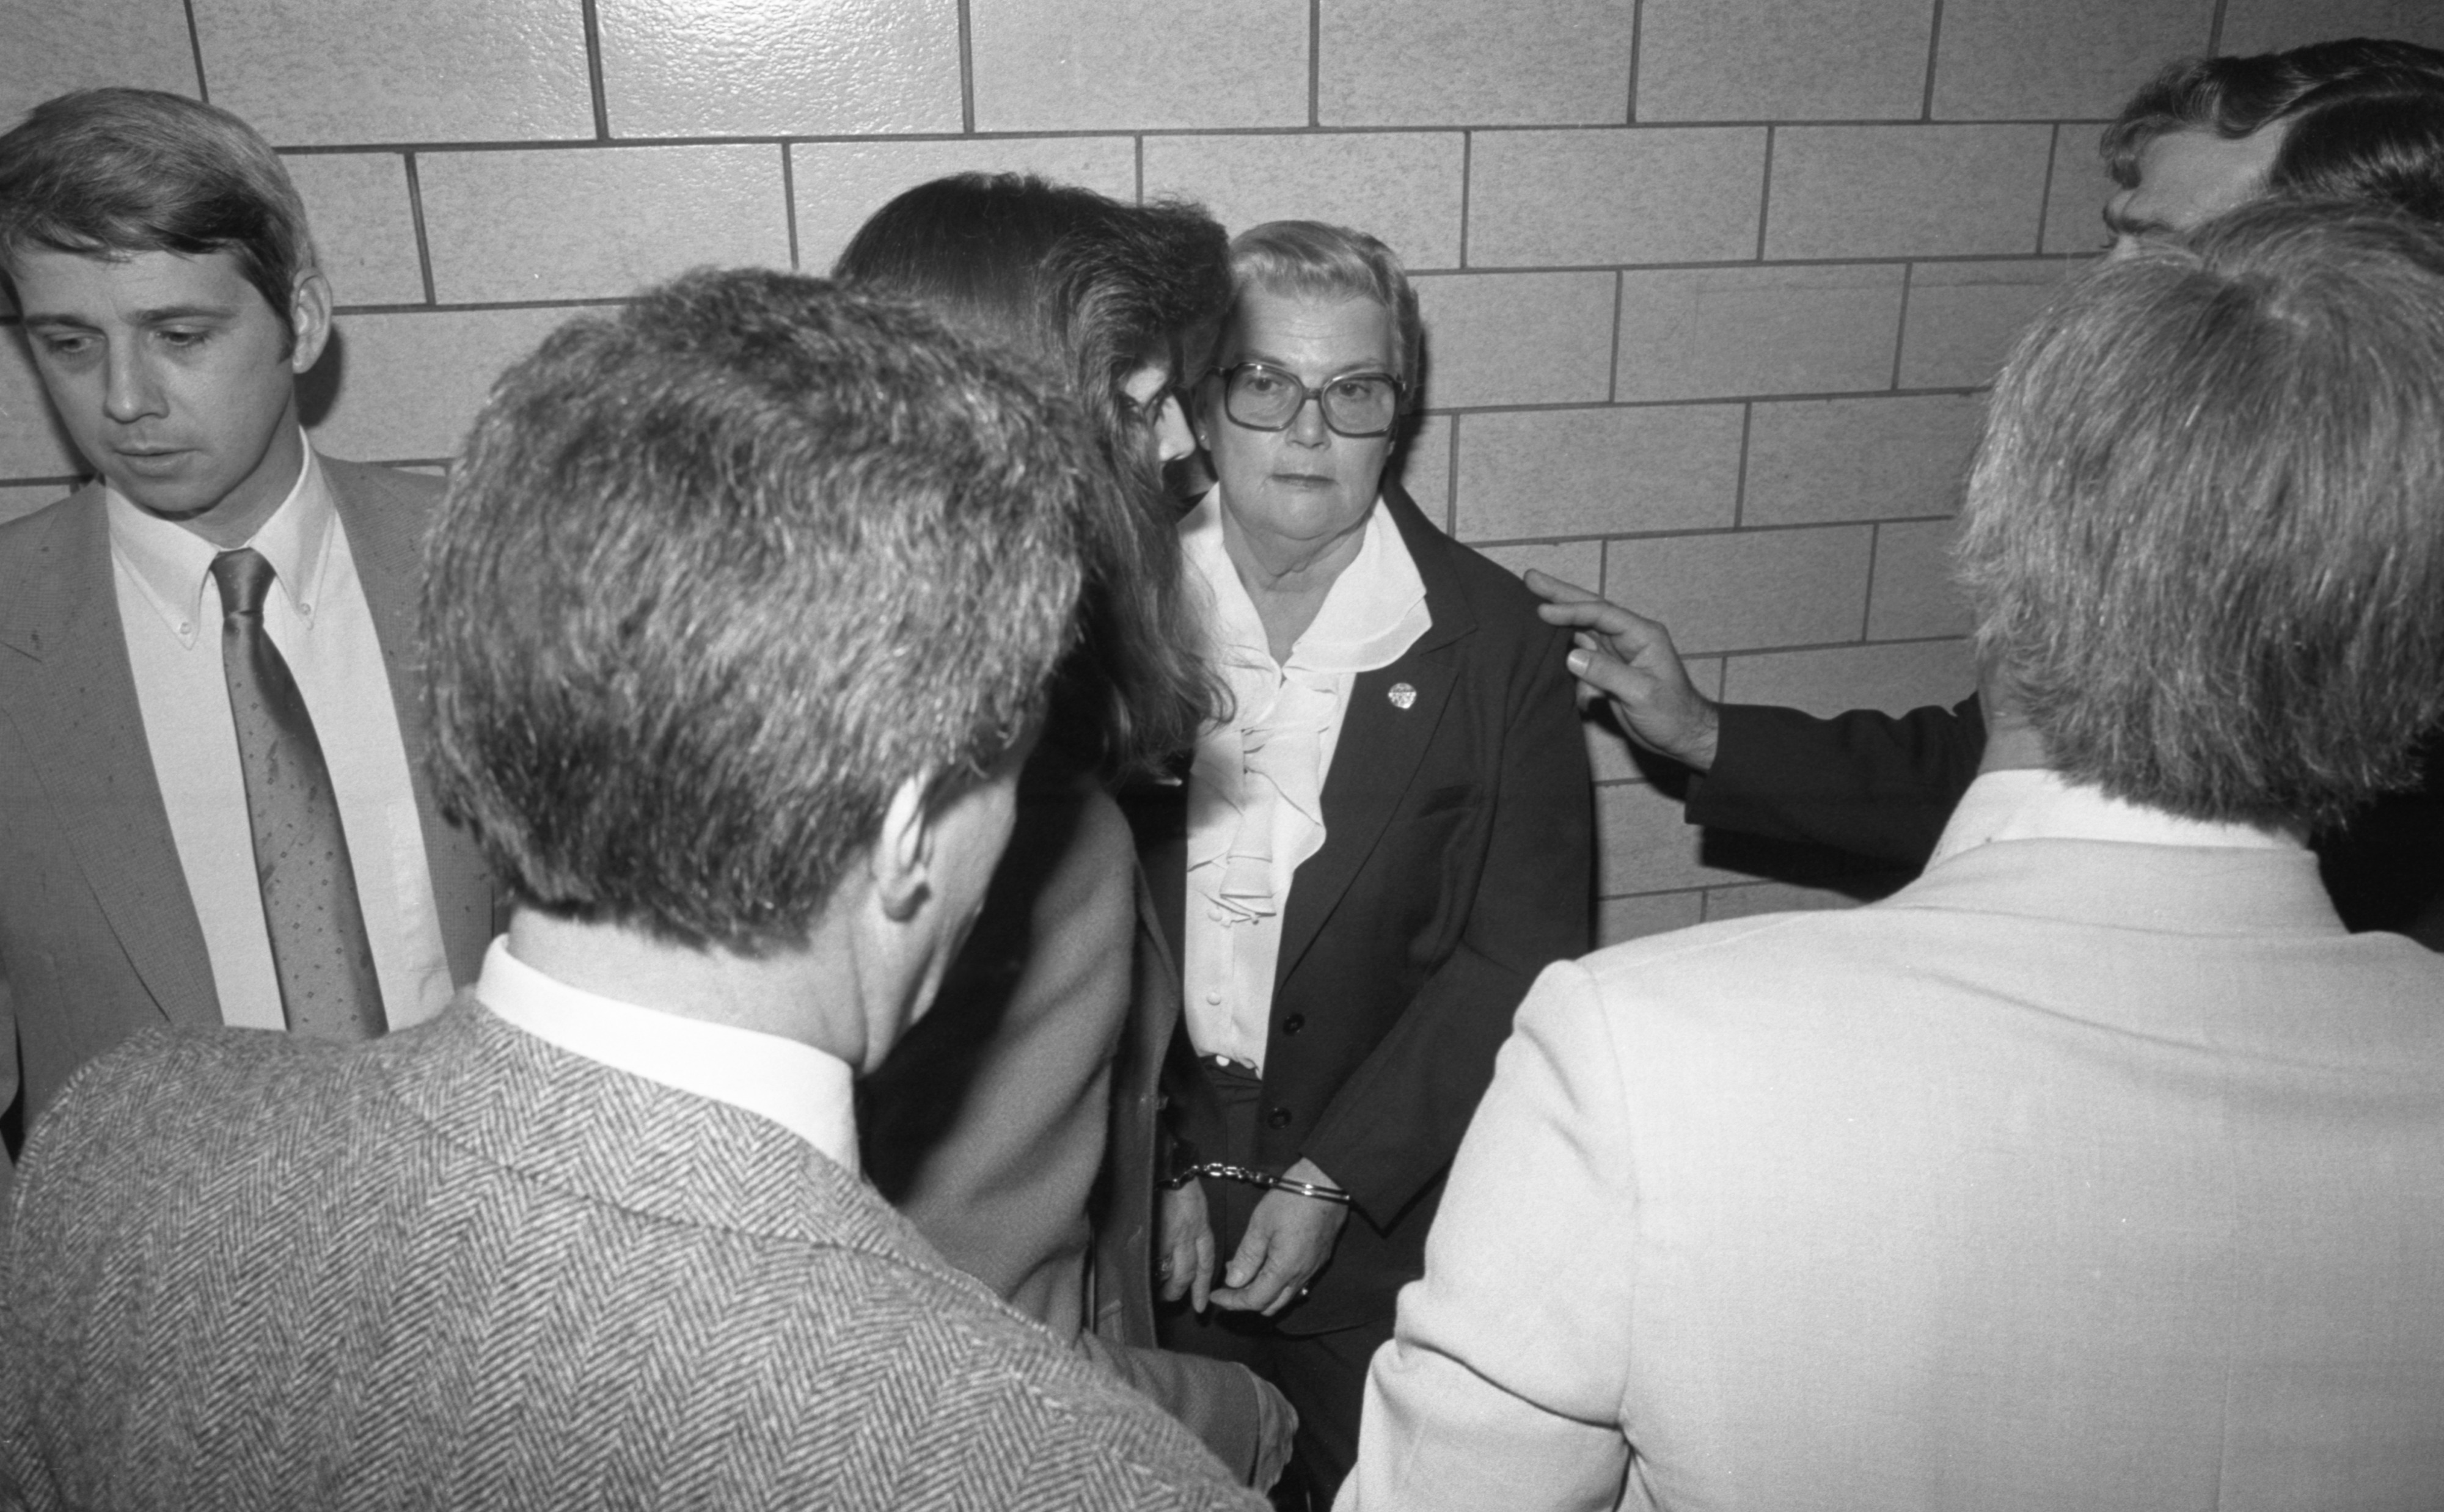 FBI Agents With Slavery Suspect Margarethe Kozminski Inside The Washtenaw County Courthouse, October 1983 image